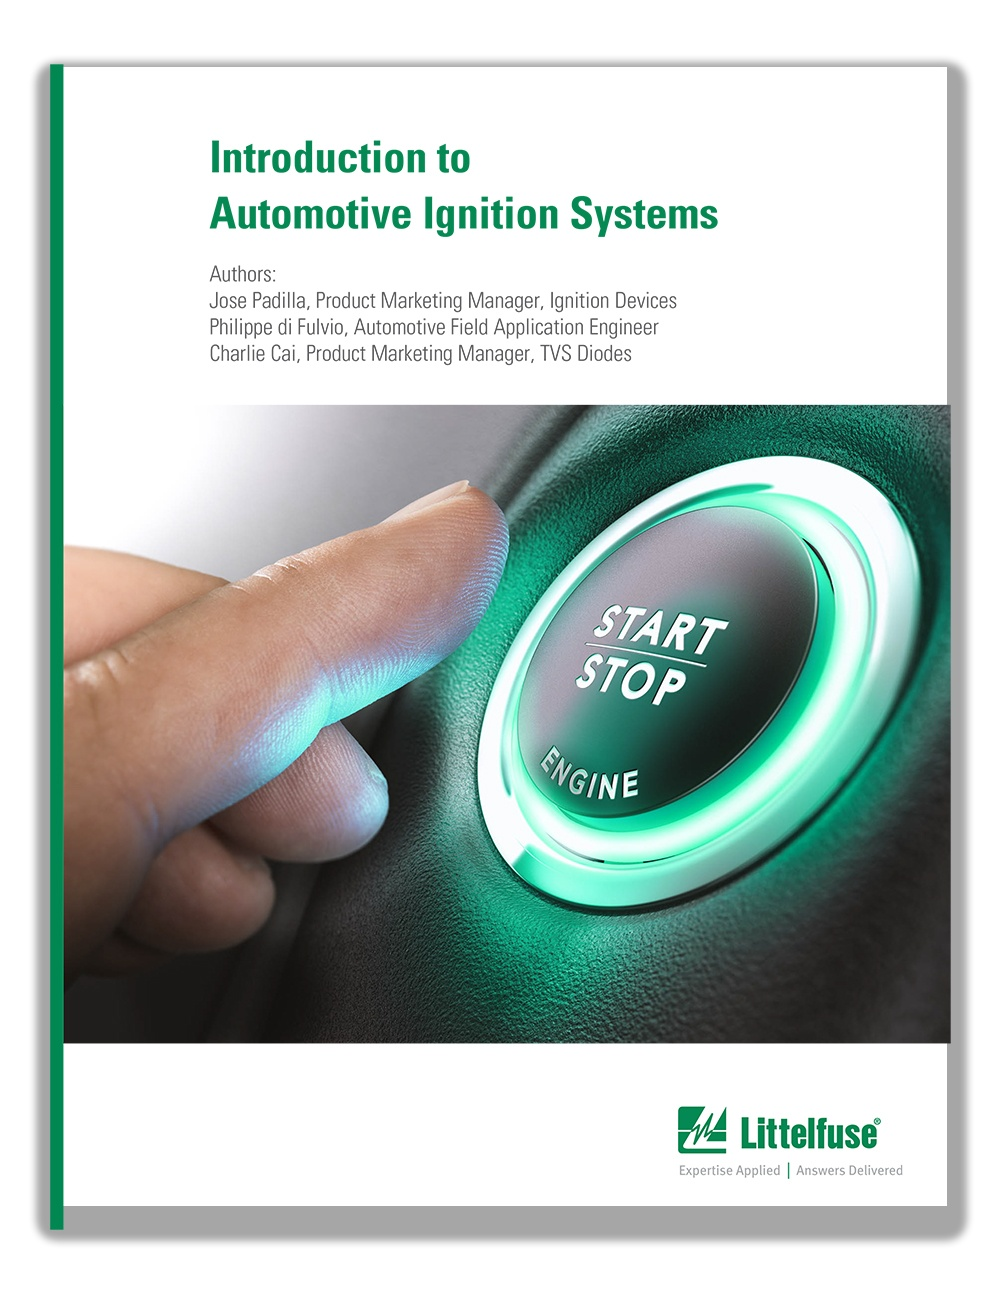 Automotive Ignition Tech Article Cover Drop Shadow 1000 px.jpg